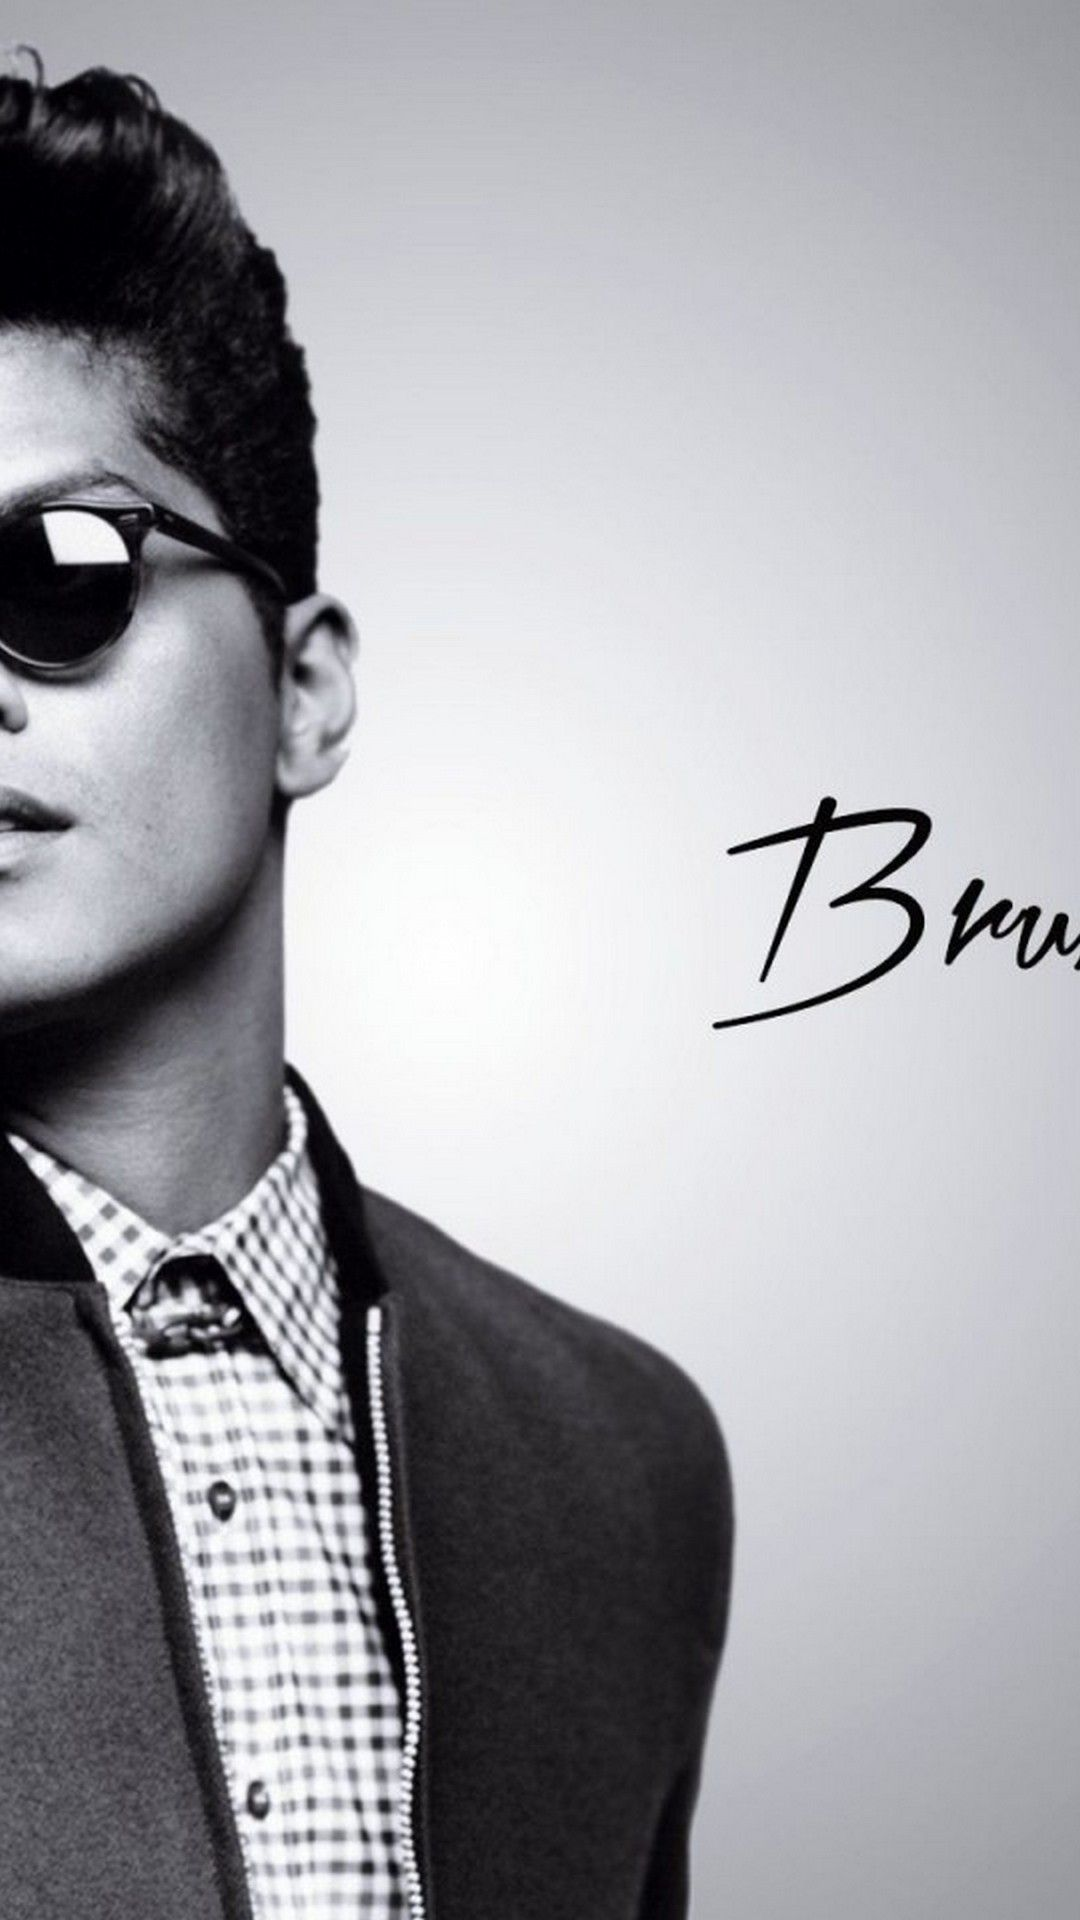 Bruno Mars Wallpaper 87 images in Collection Page 2 1080x1920